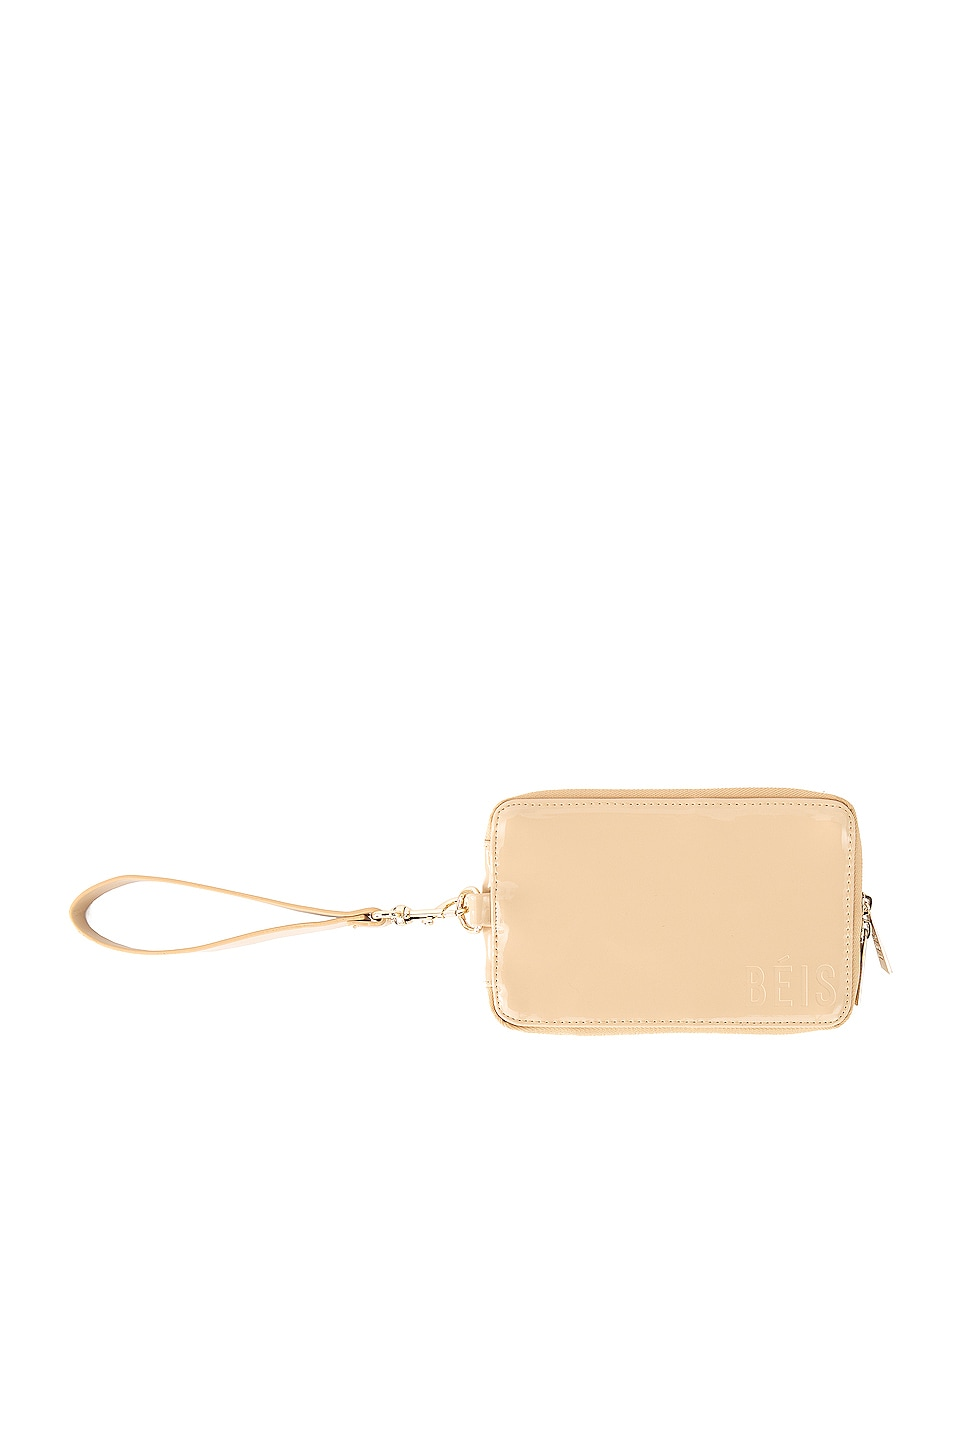 BEIS Travel Wallet in Beige